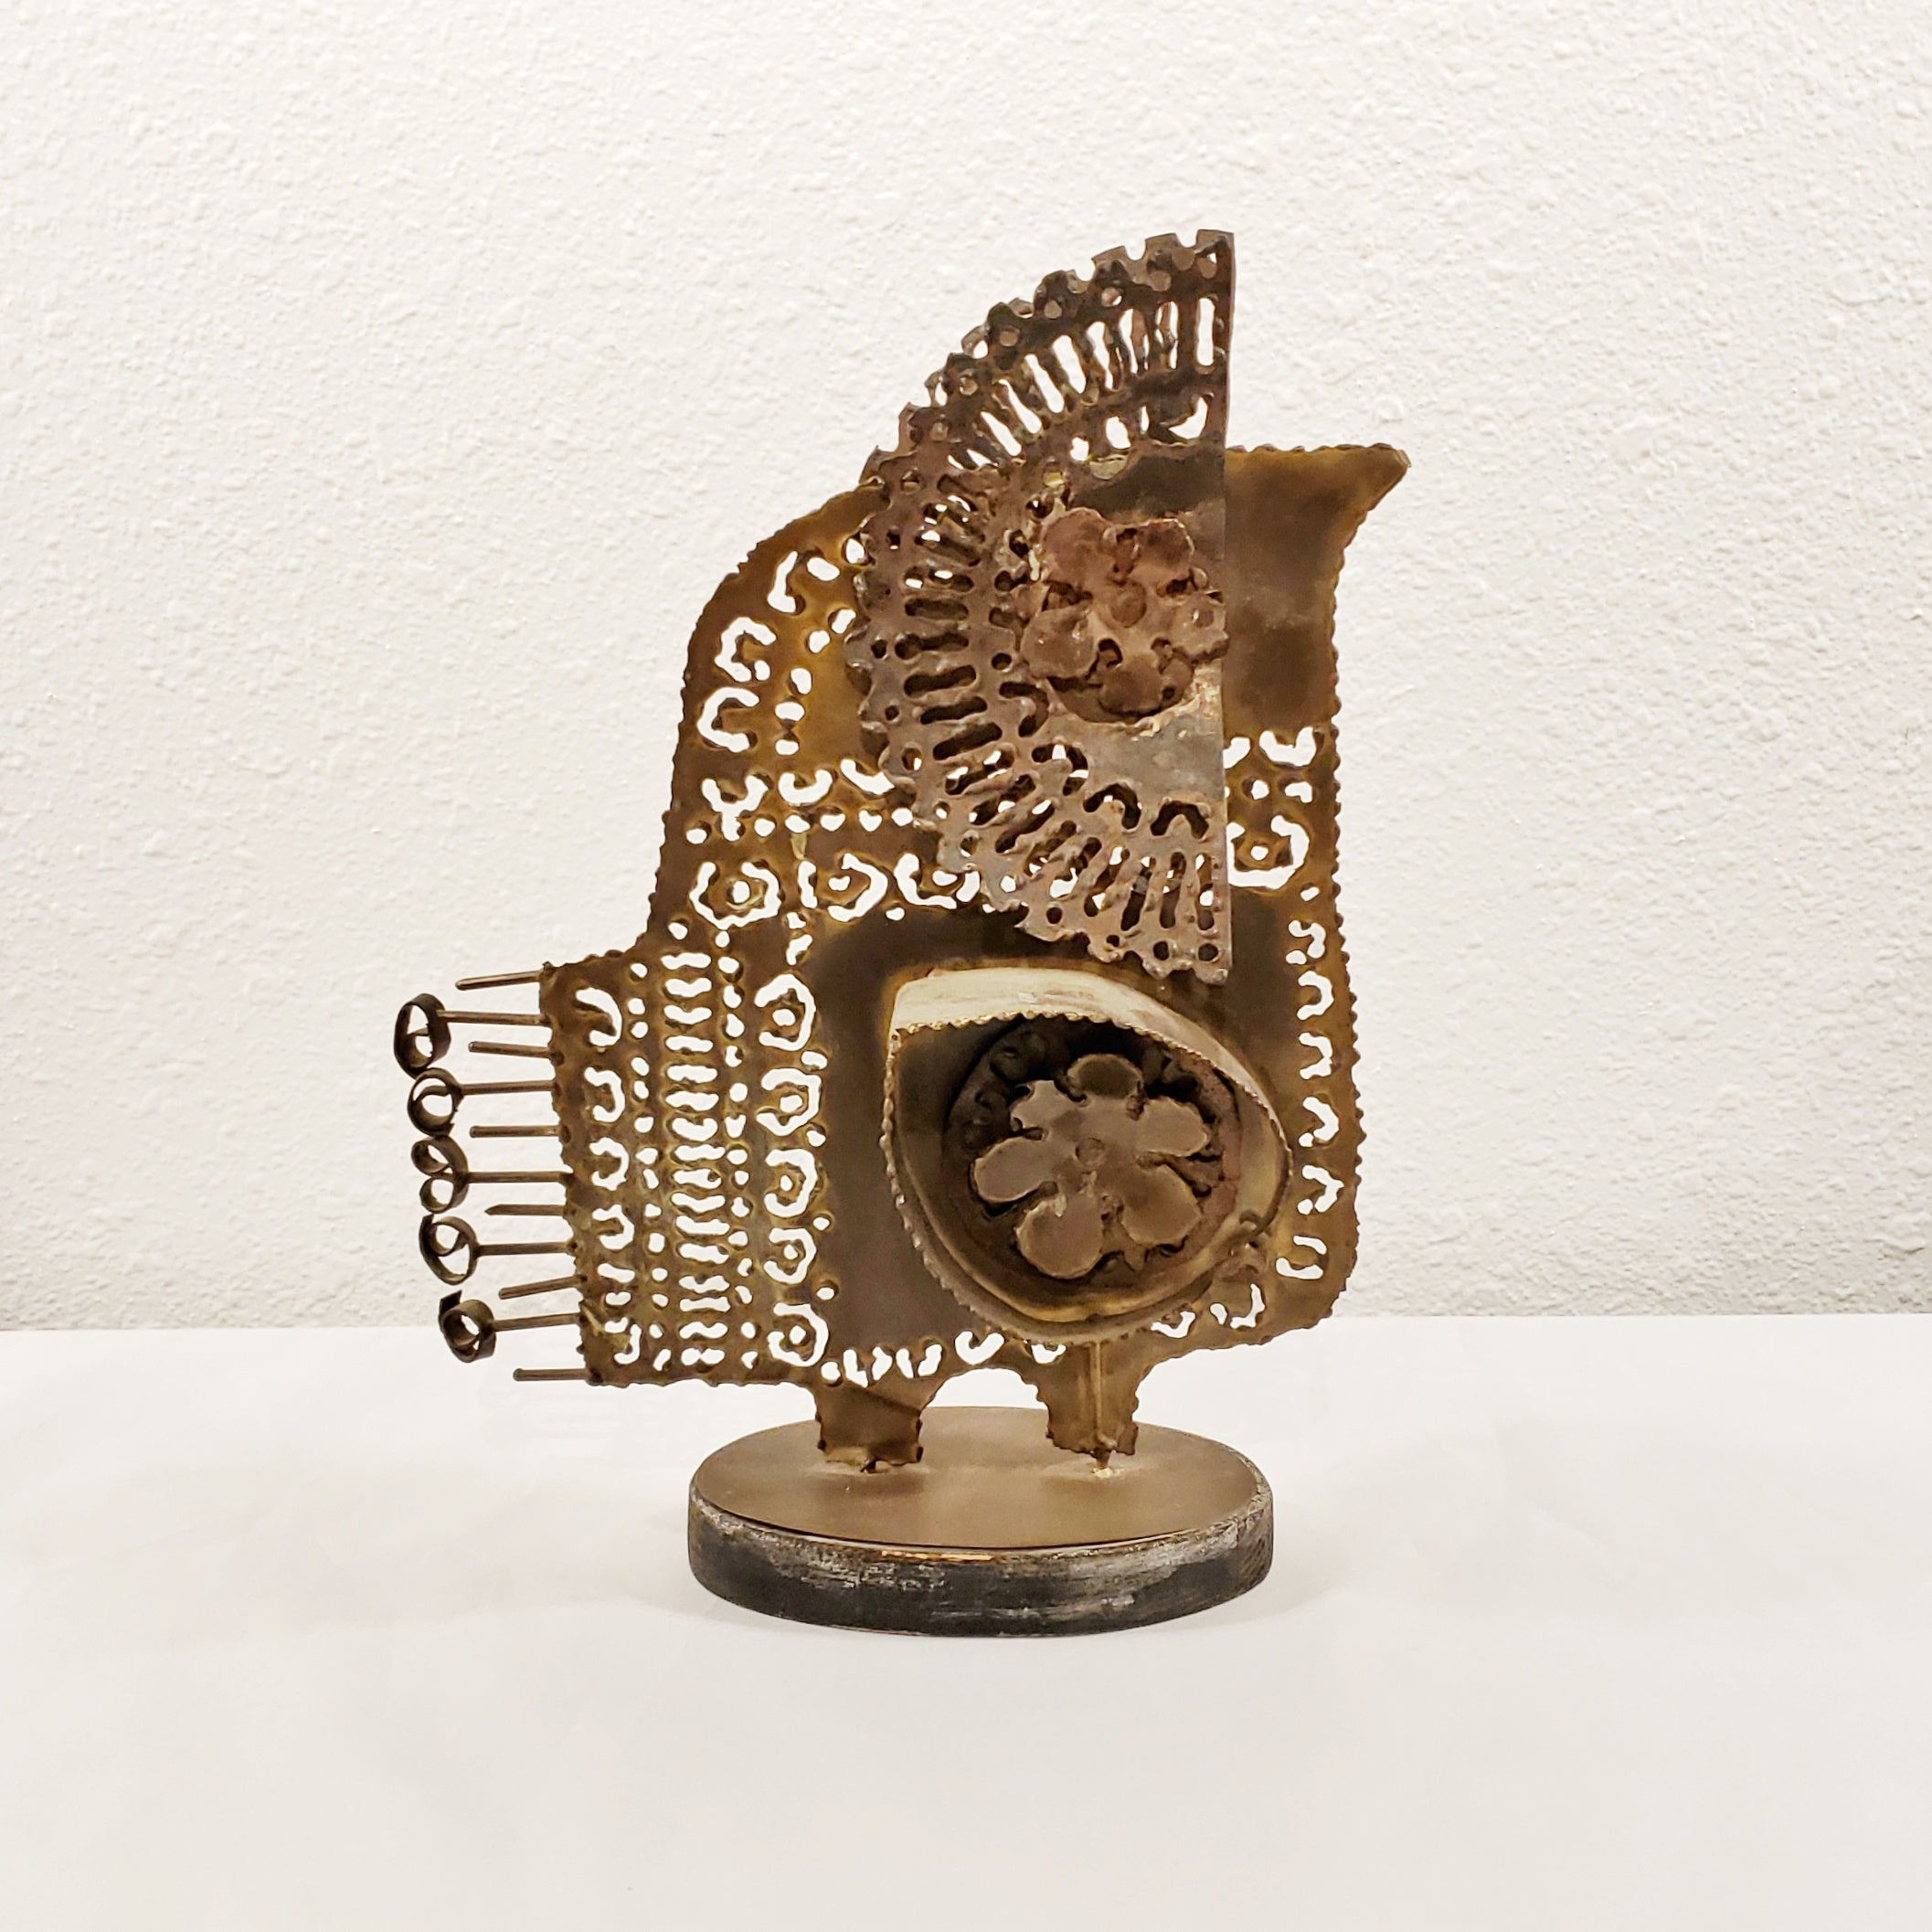 METAL OWL SCULPTURE IN THE STYLE OF FANTONI OR CURTIS JERE